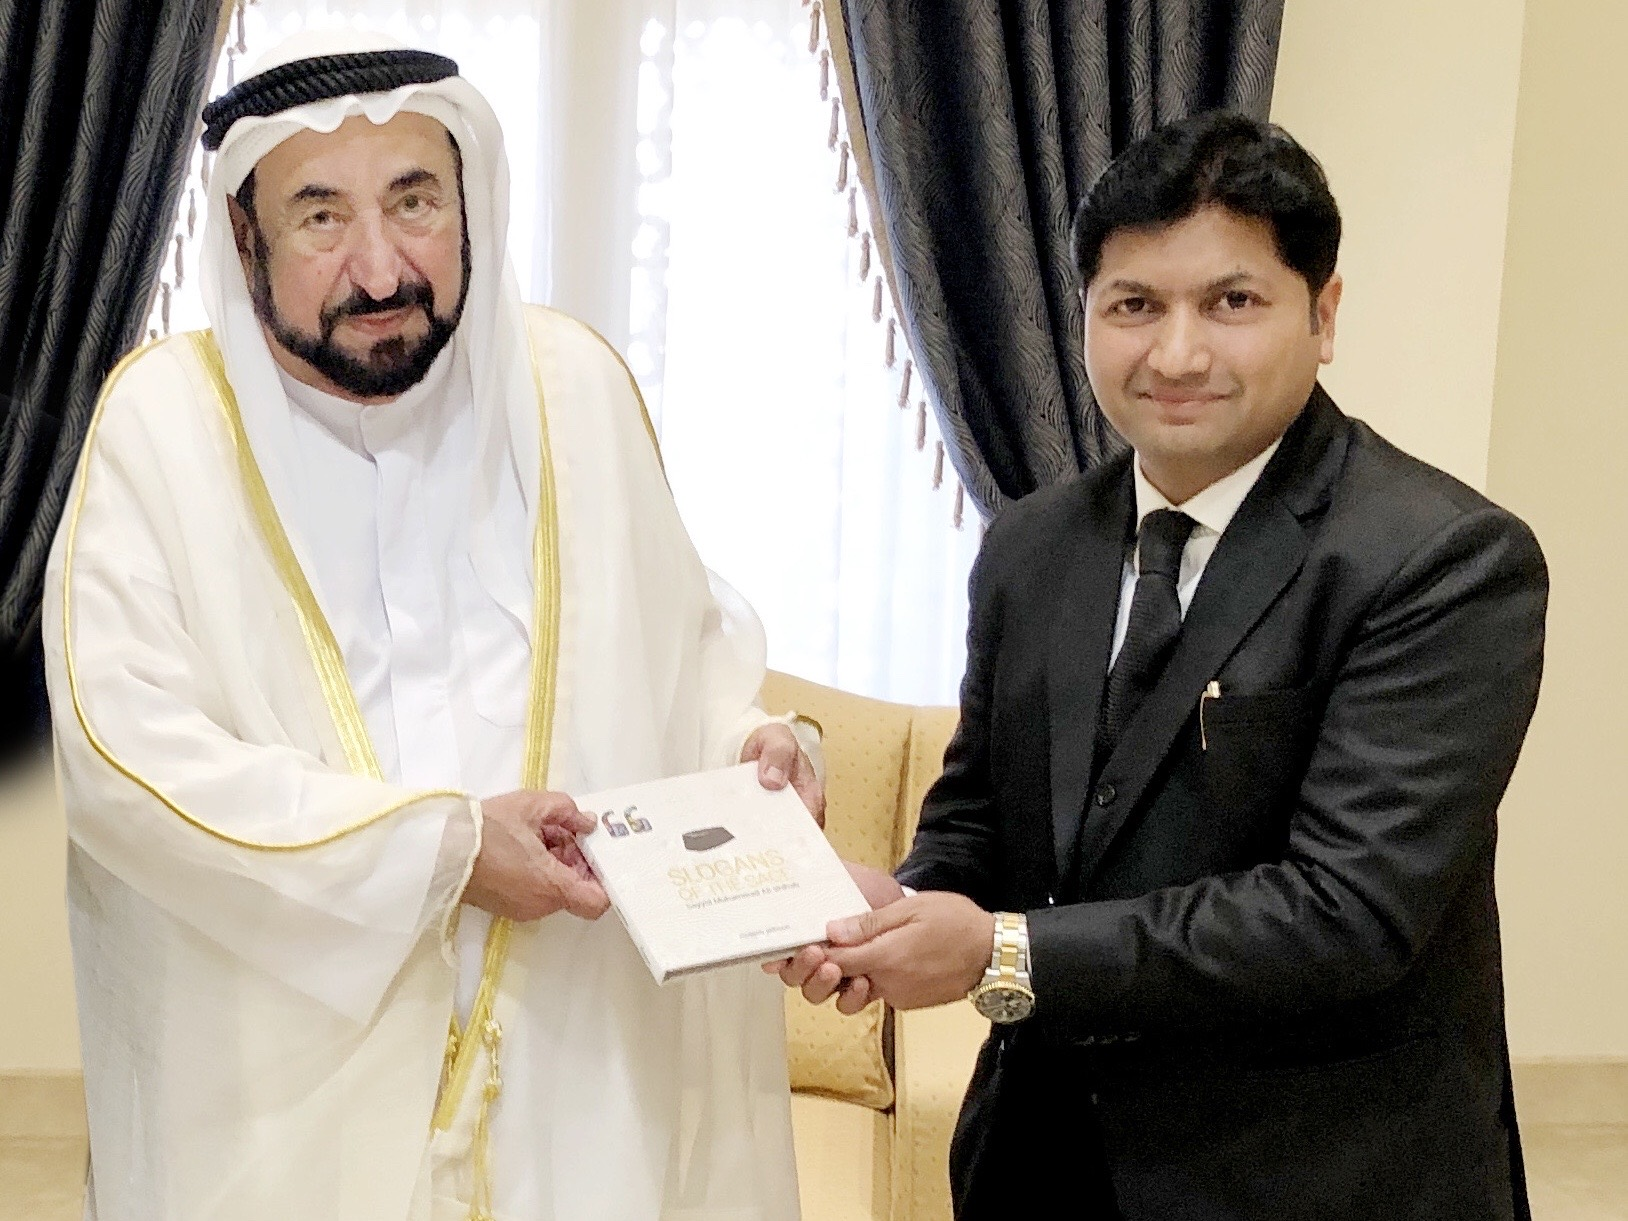 Mujeeb Jaihoon presents SLOGANS OF THE SAGE to Dr. Sheikh Sultan, ruler of Sharjah